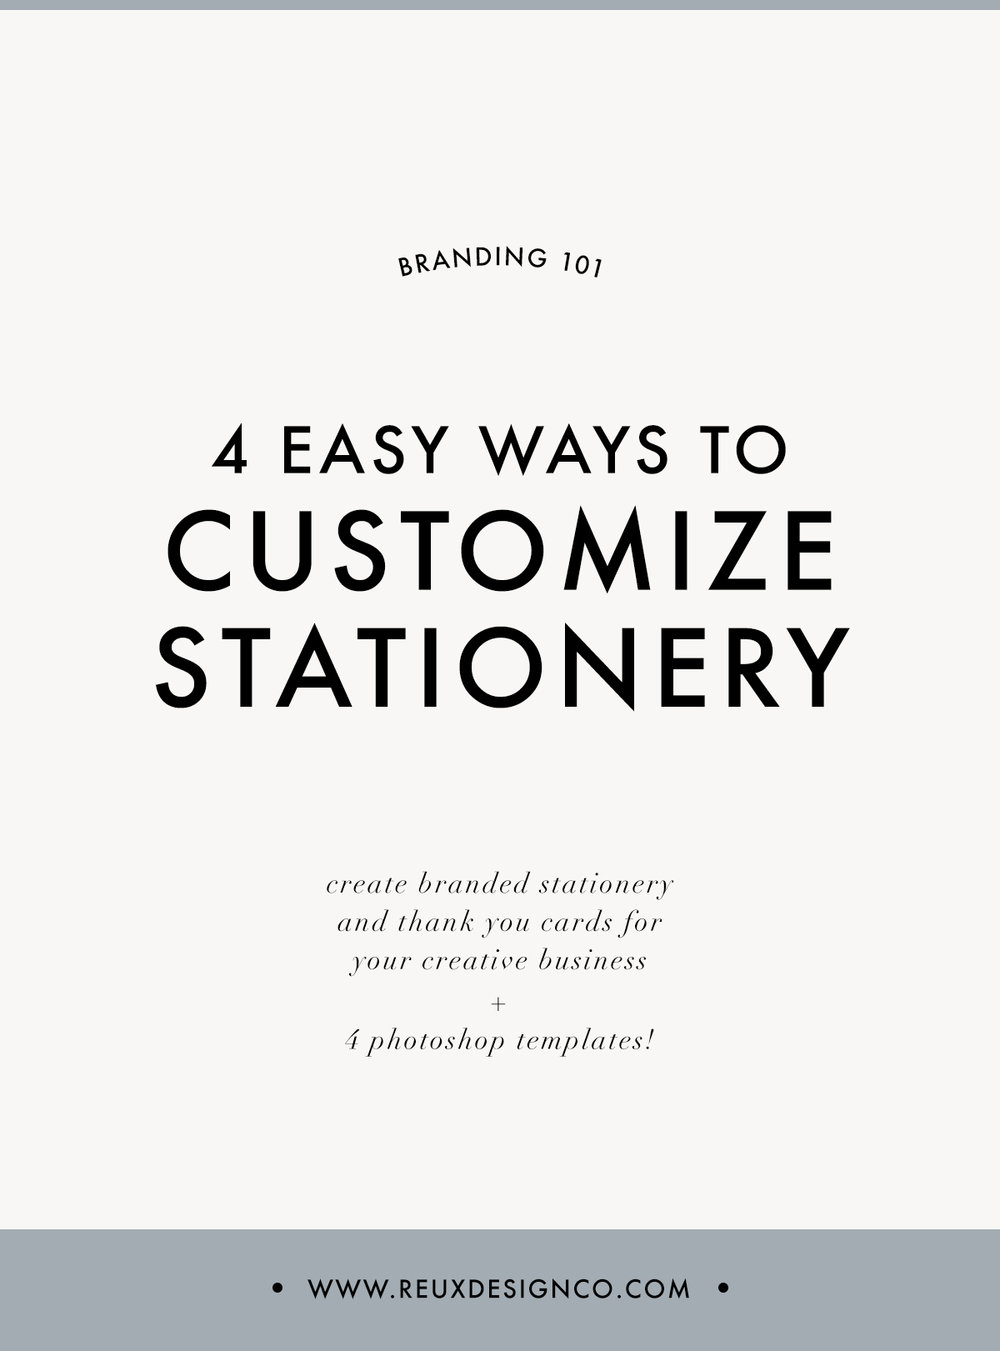 4 Easy Ways to Customize Branded Stationery and Cards for your Creative Business (plus templates!) | Reux Design Co